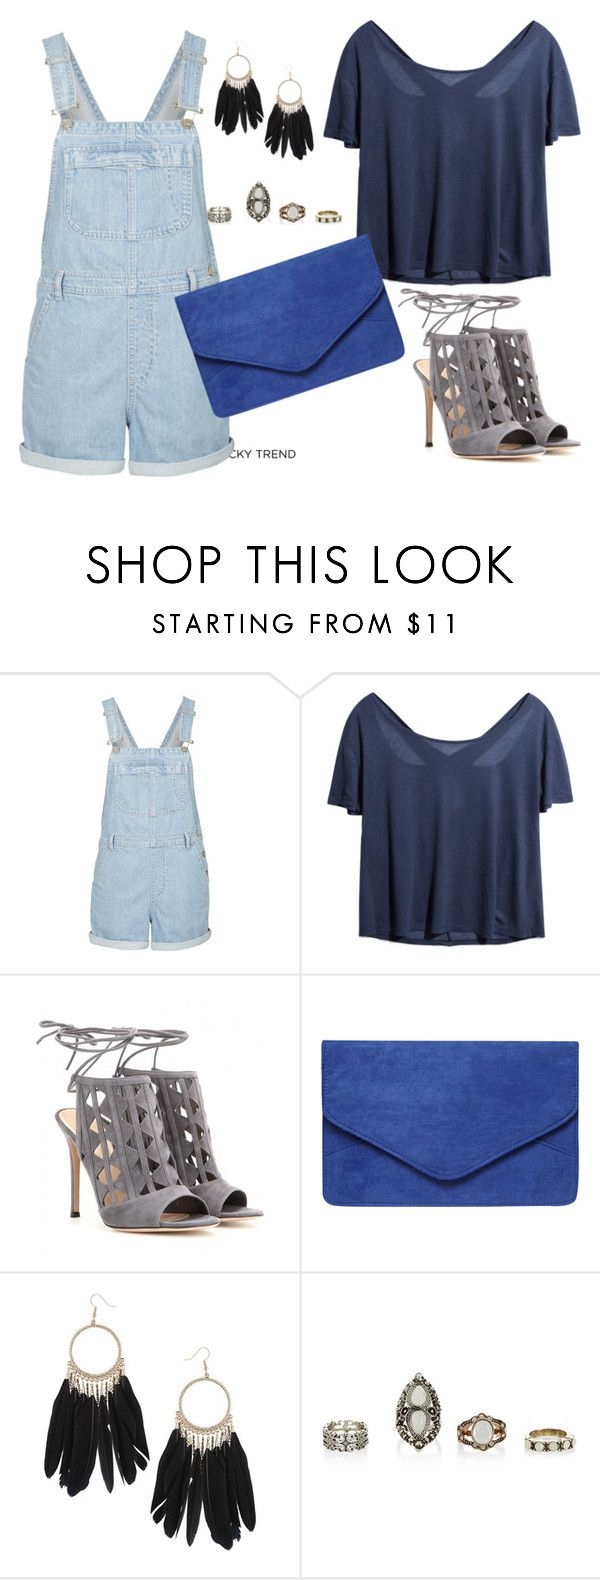 """""""lejer"""" by iuliaandreeab ❤ liked on Polyvore featuring Topshop, Gianvito Rossi, Dorothy Perkins, women's clothing, women's fashion, women, female, woman, misses and juniors"""